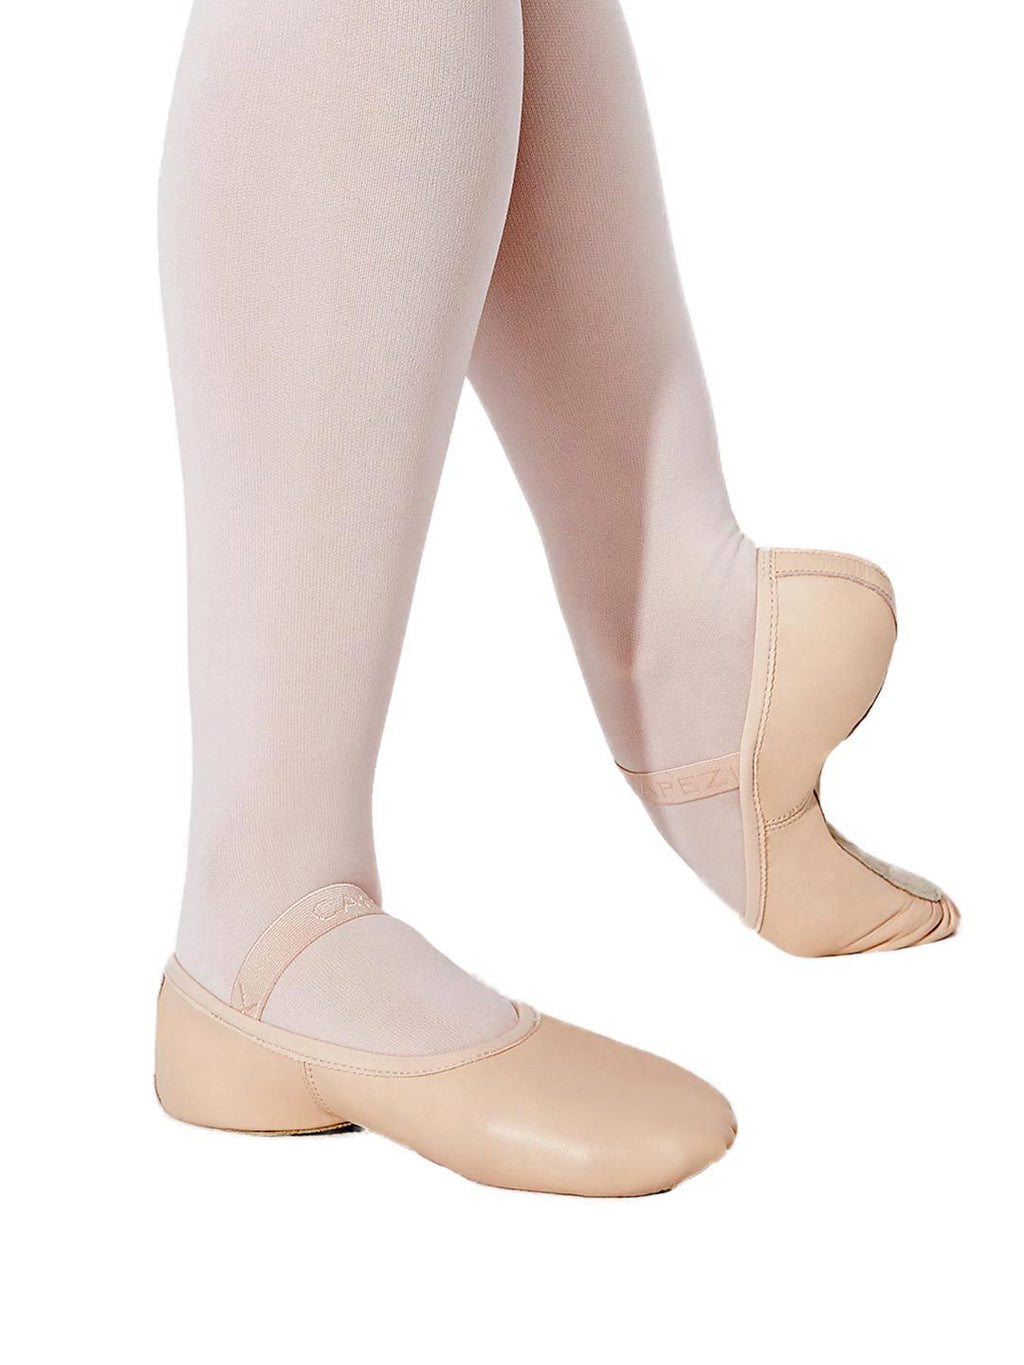 Demi-pointes LILY 212C